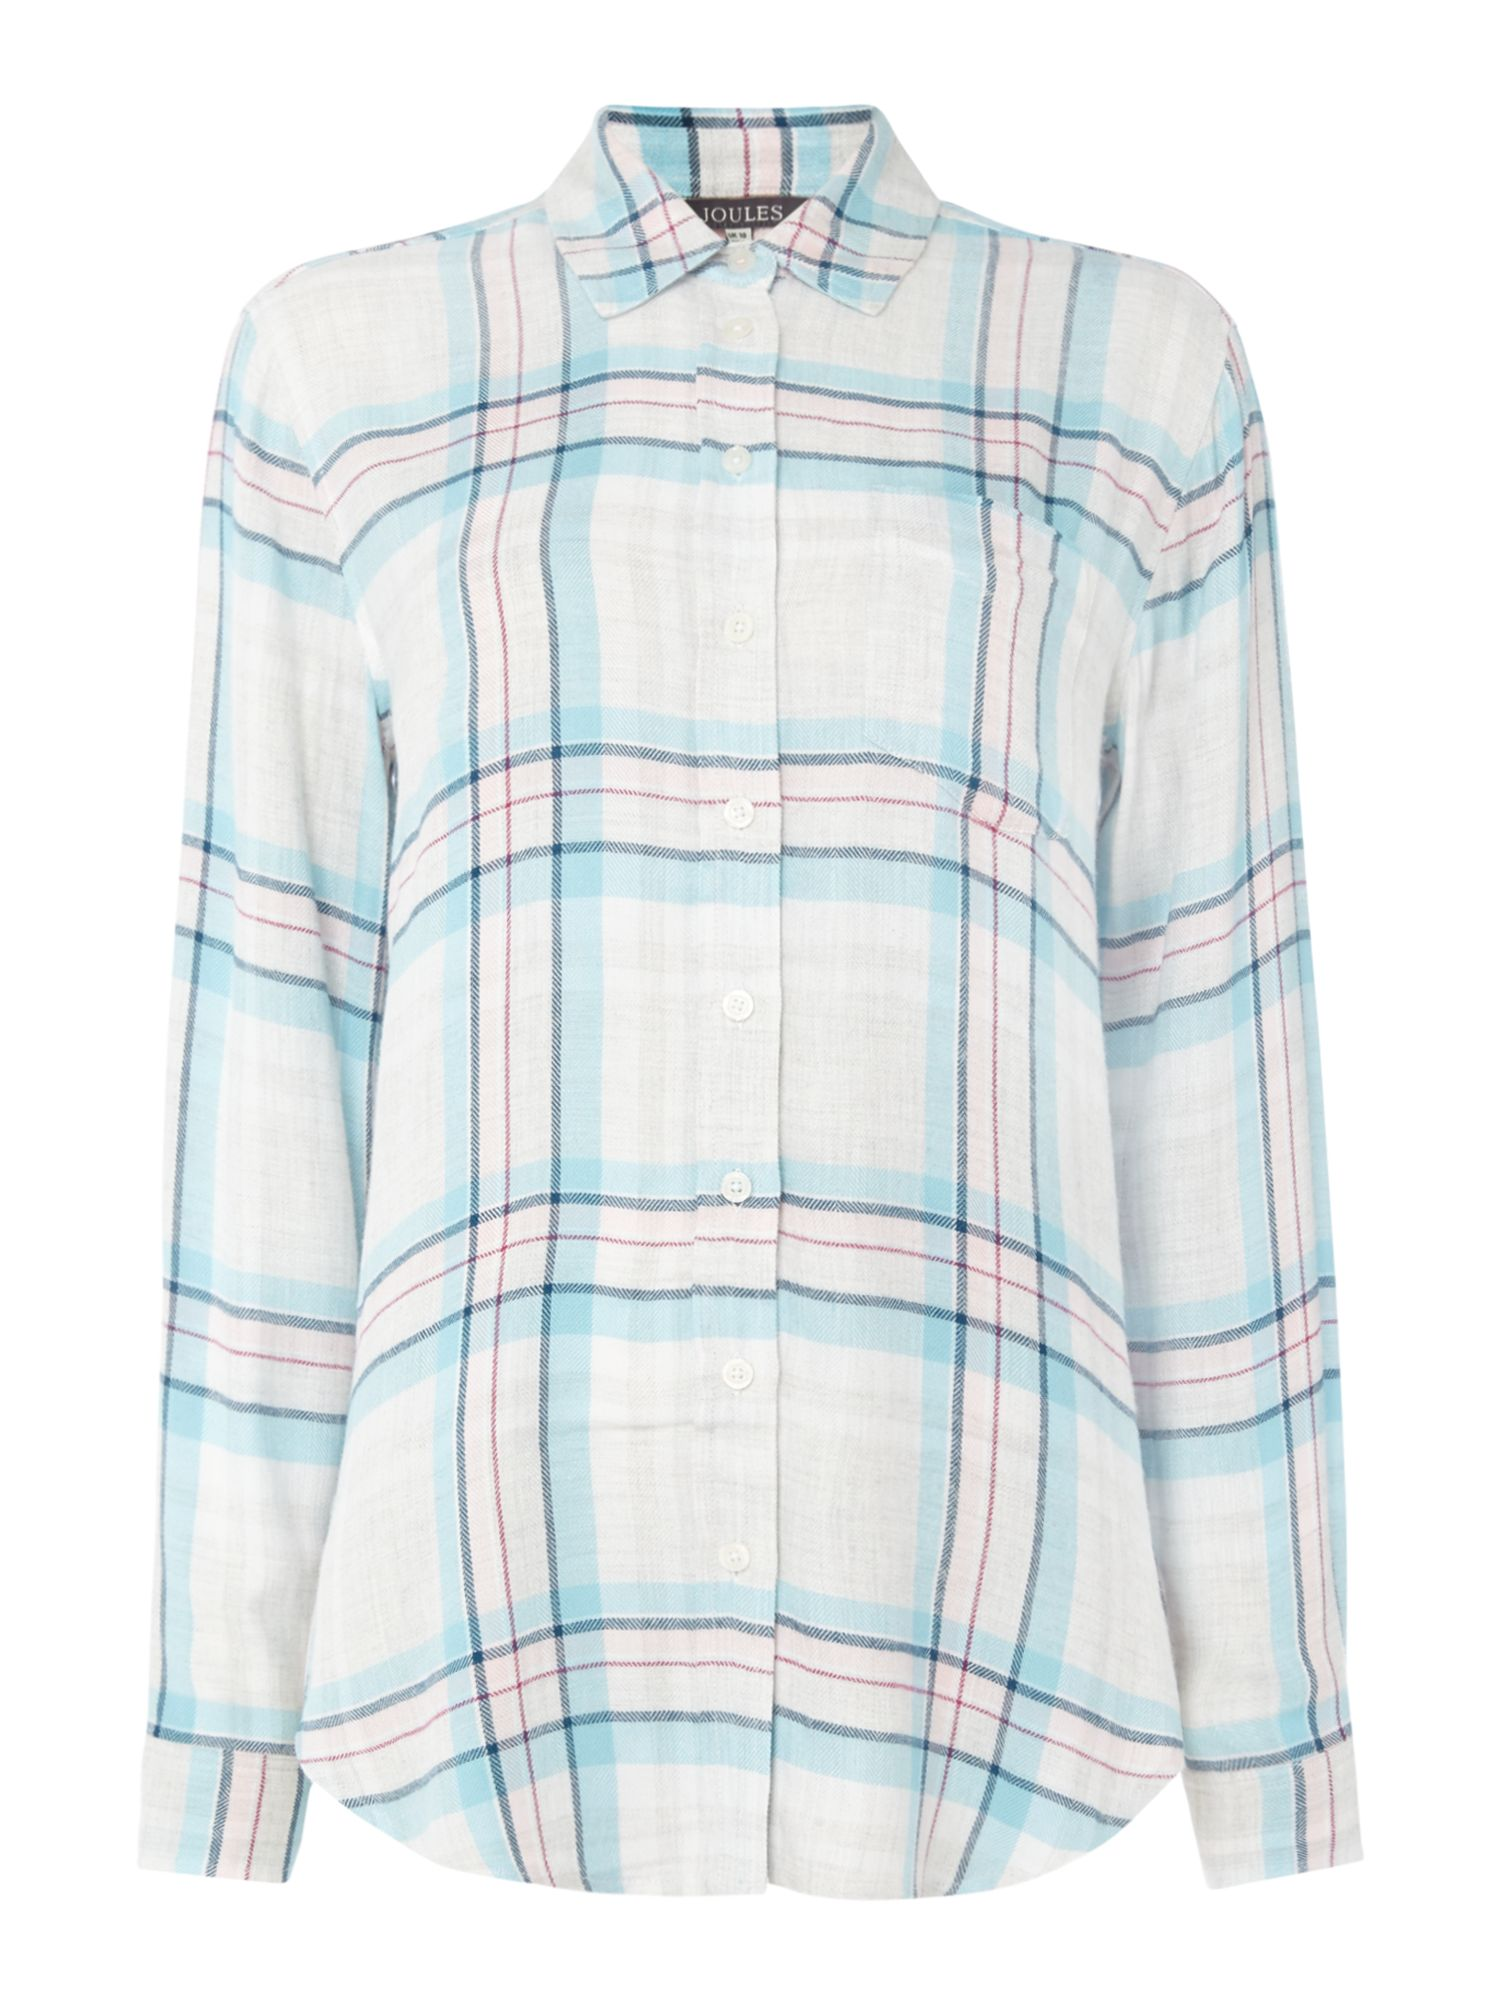 Joules Long line shirt, Multi-Coloured